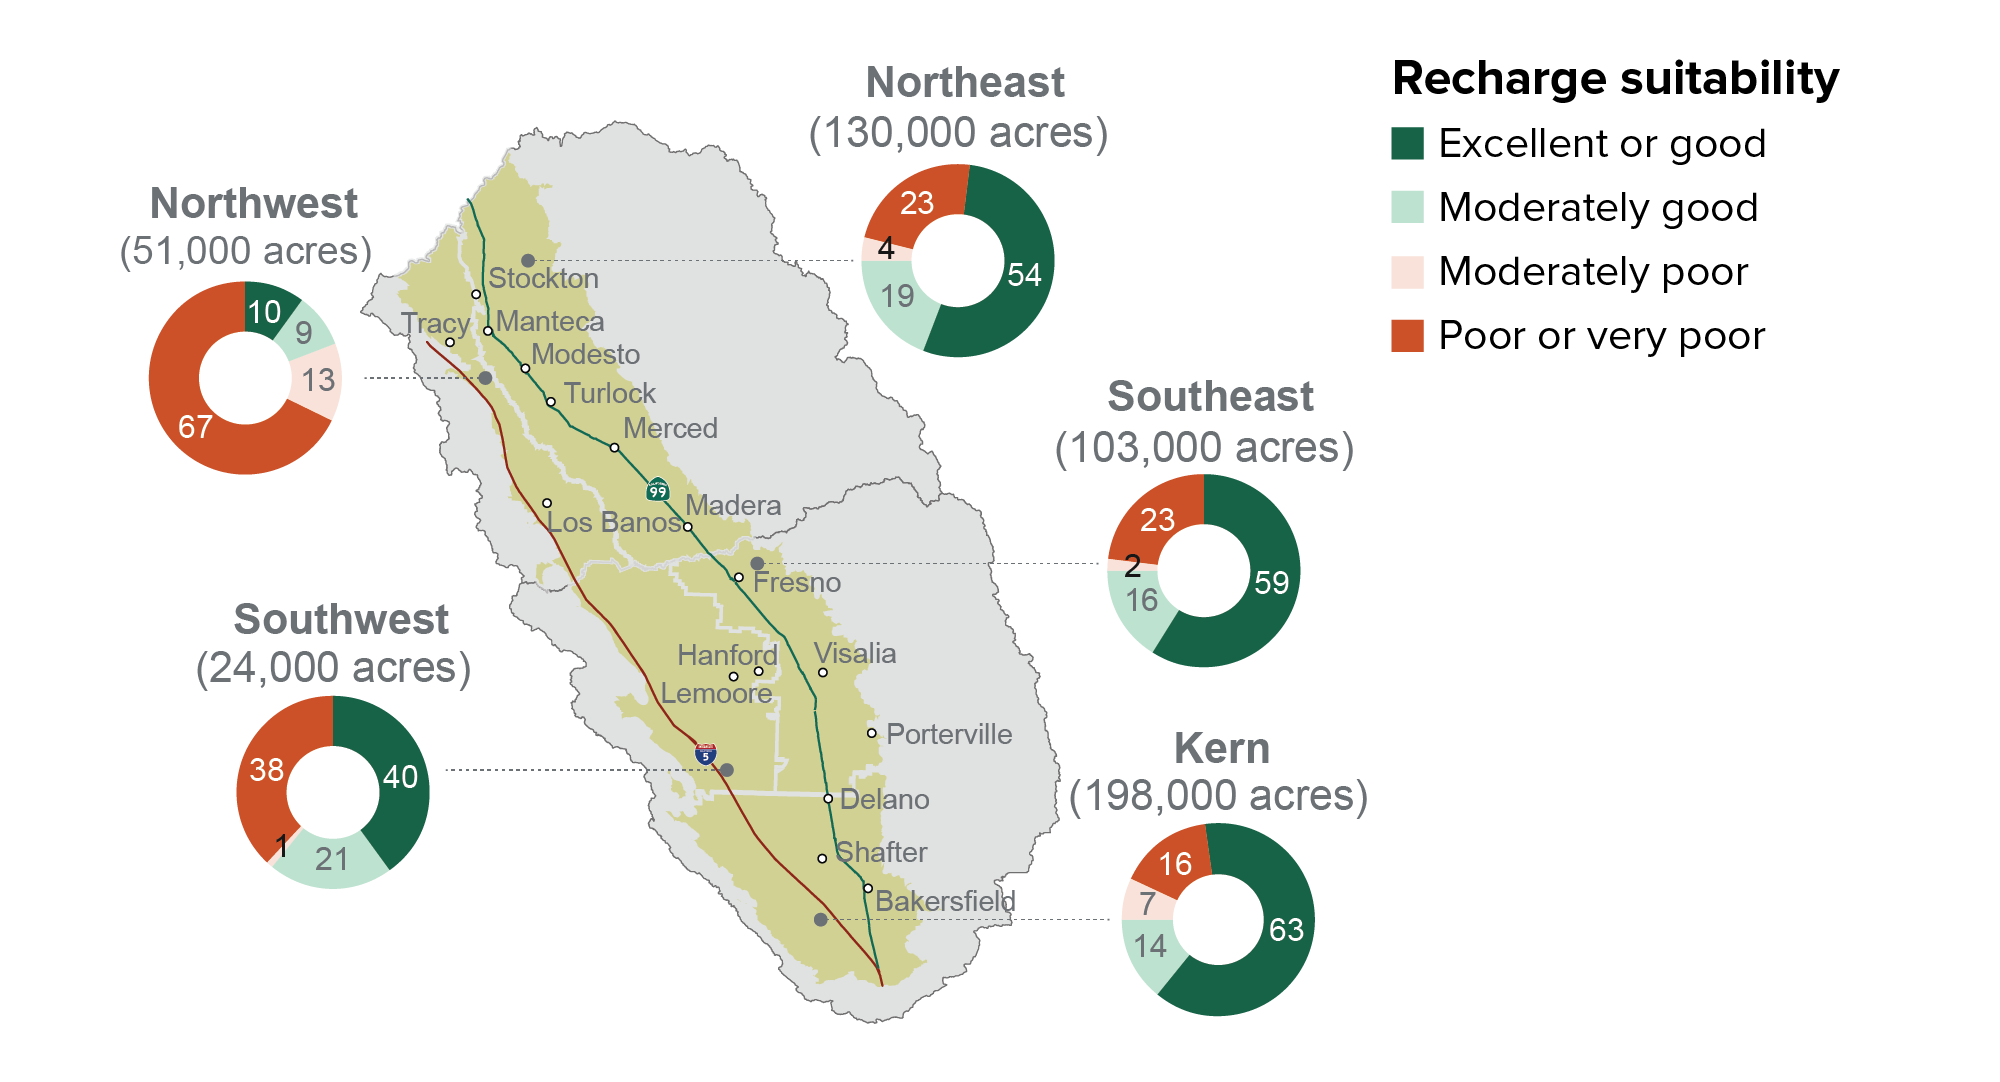 figure - Many urban areas in the valley are surrounded by lands suitable for groundwater recharge